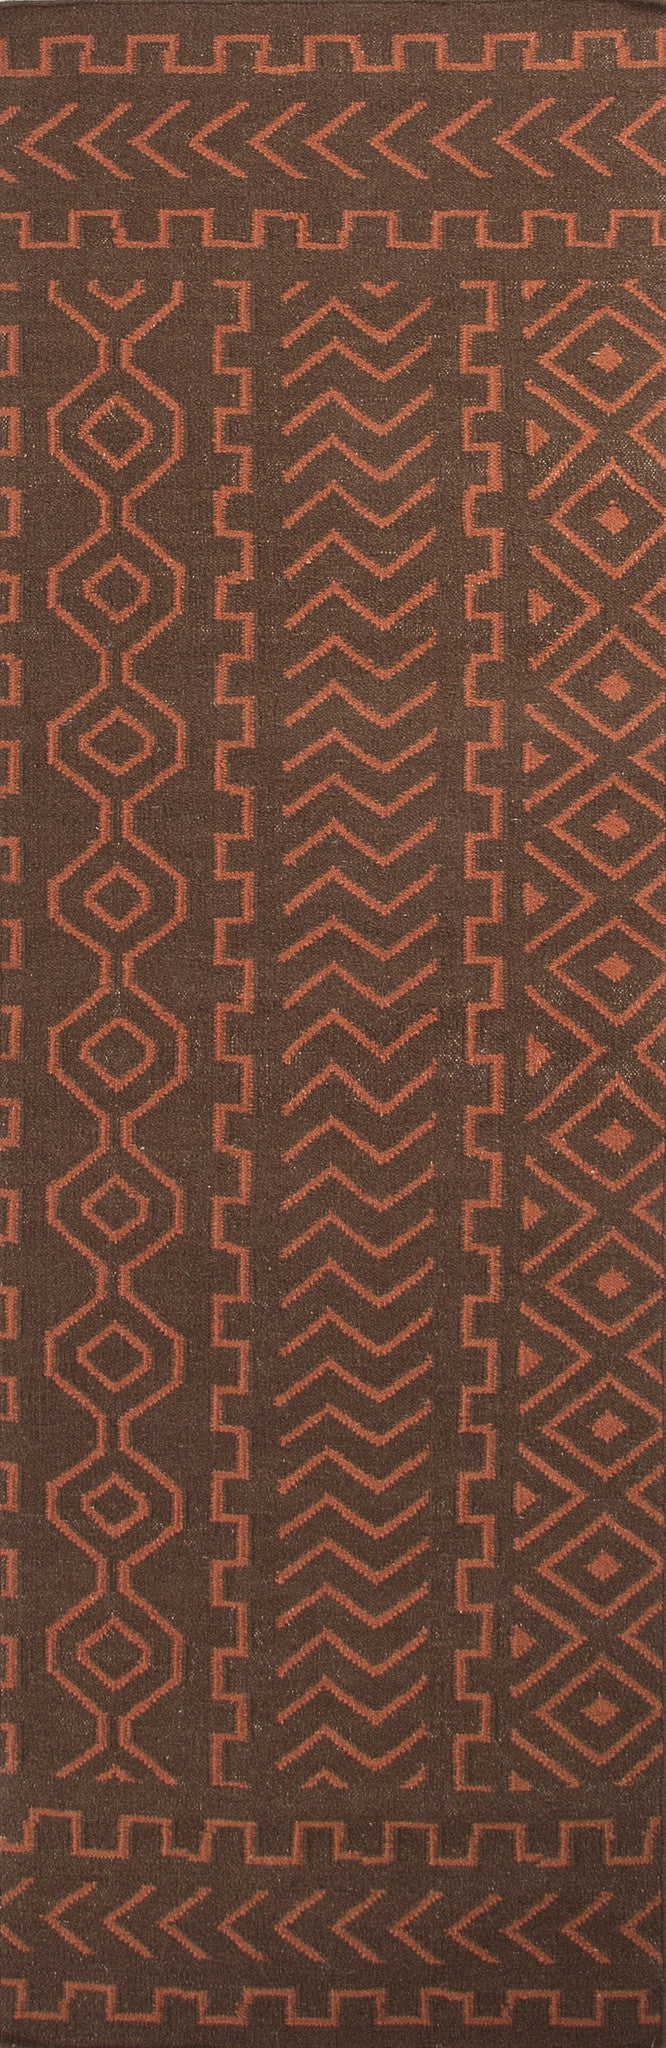 Jaipur Rugs Flat-Weave Tribal Pattern Brown/Red Wool Area Rug